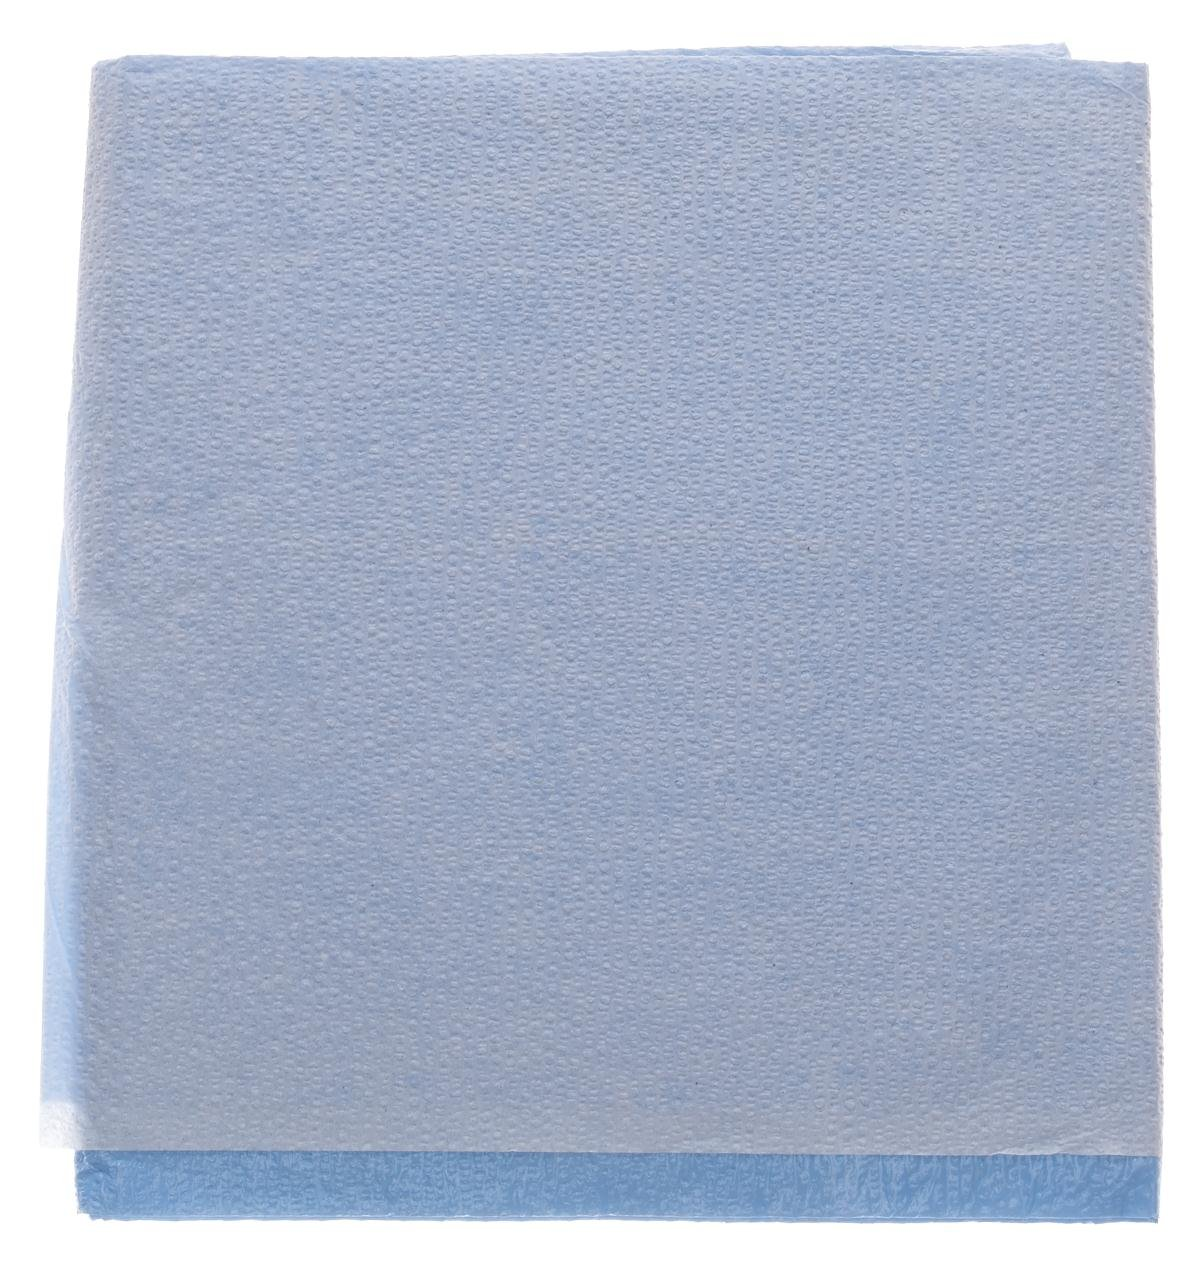 Medline NON24333 Disposable Tissue/Poly Flat Stretcher Sheets, 40'' x 72'', Blue (Pack of 50) by Medline (Image #1)